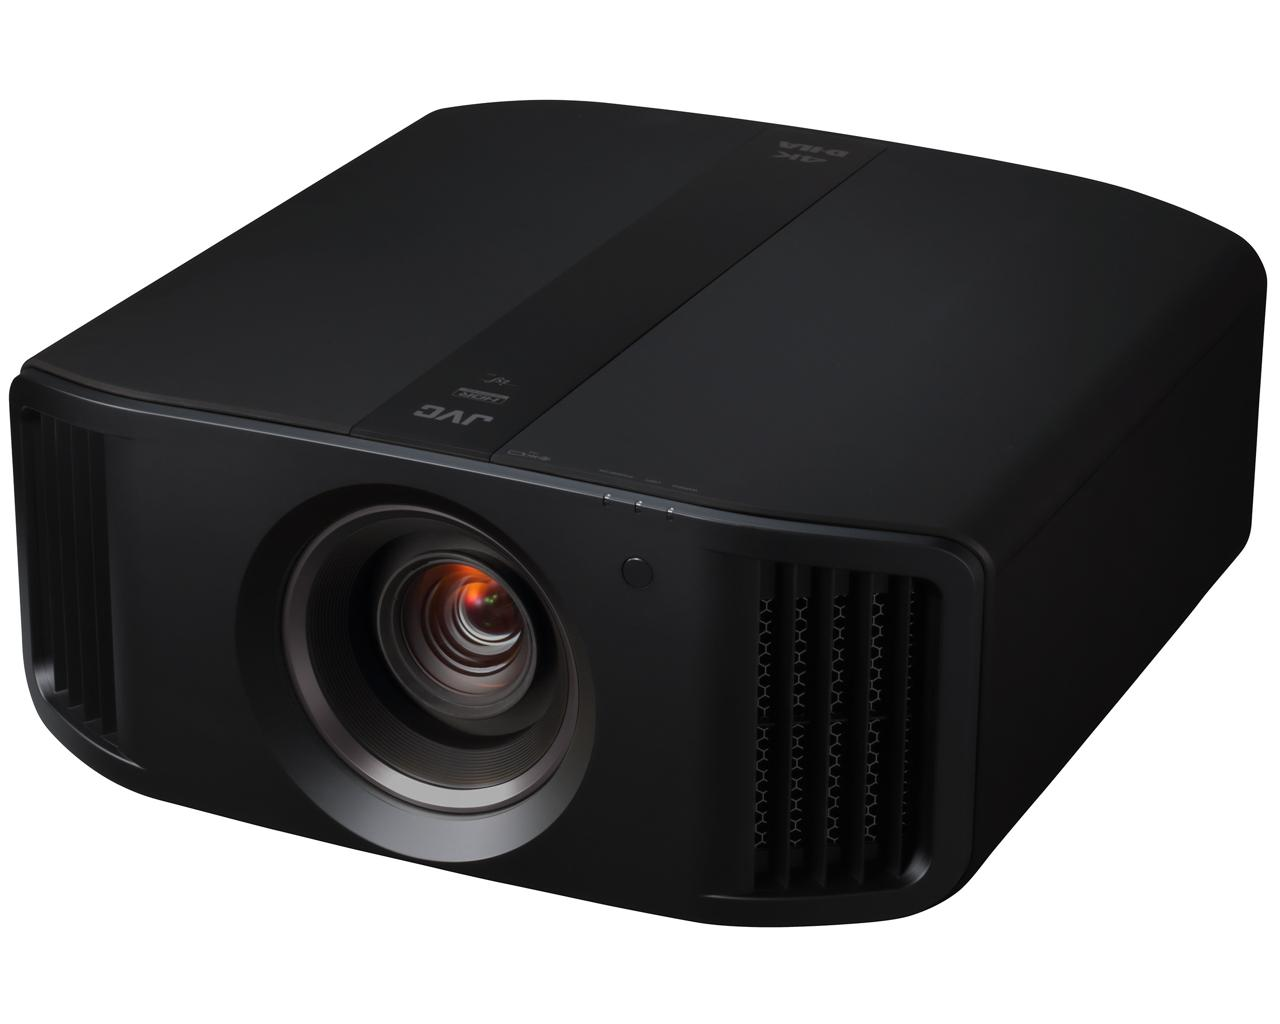 JVC DLA-N5 - 1800 Lumens 4096 x 2160 (4K) Resolution JVC Projector